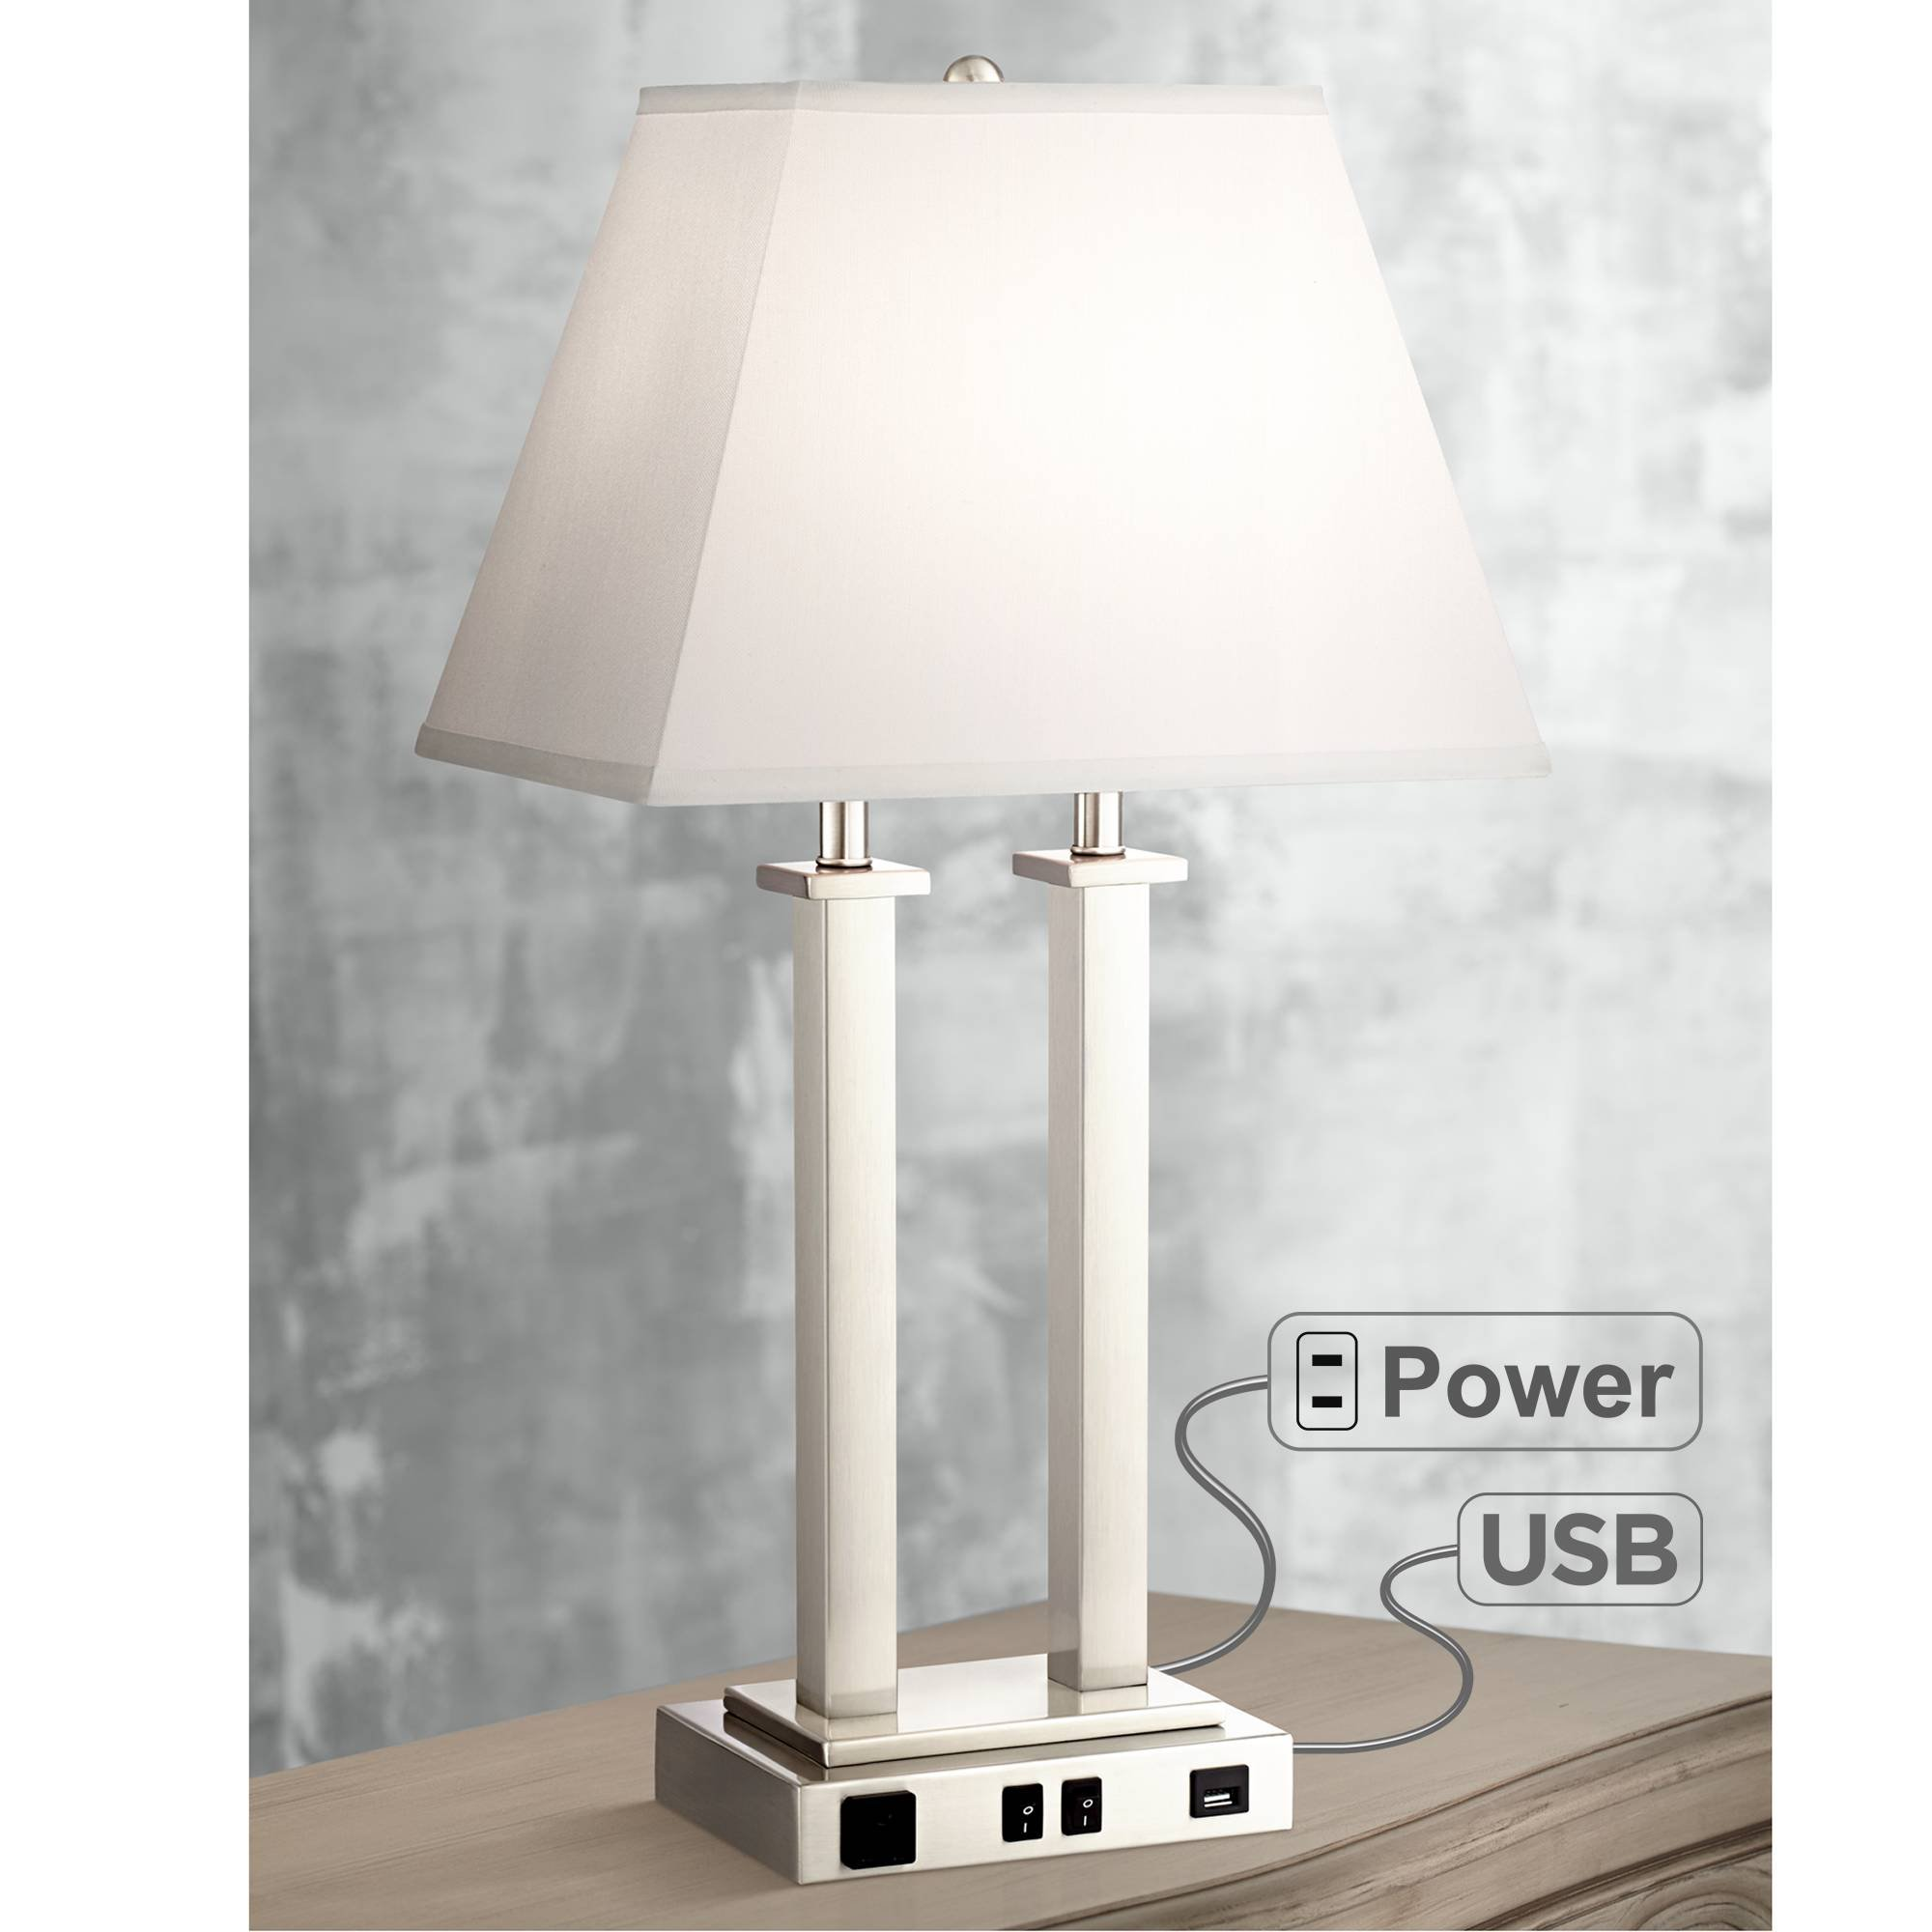 Amity Modern Table Lamp with Hotel Style USB & AC Outlet Brushed Nickel Side Outlet for Bedroom Endtable Nightstand - Possini Euro Design by Possini Euro Design